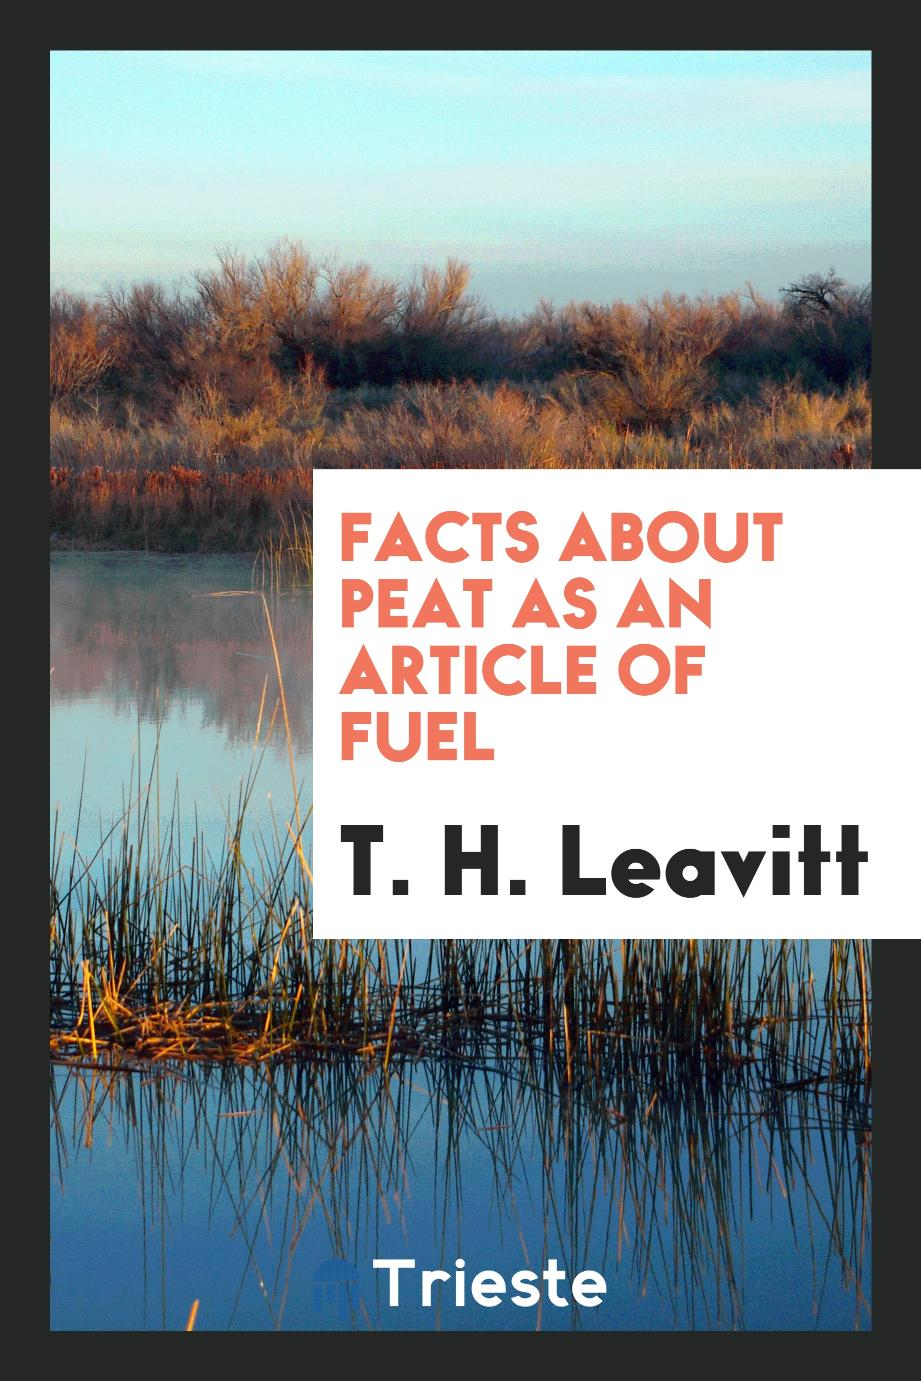 Facts About Peat as an Article of Fuel